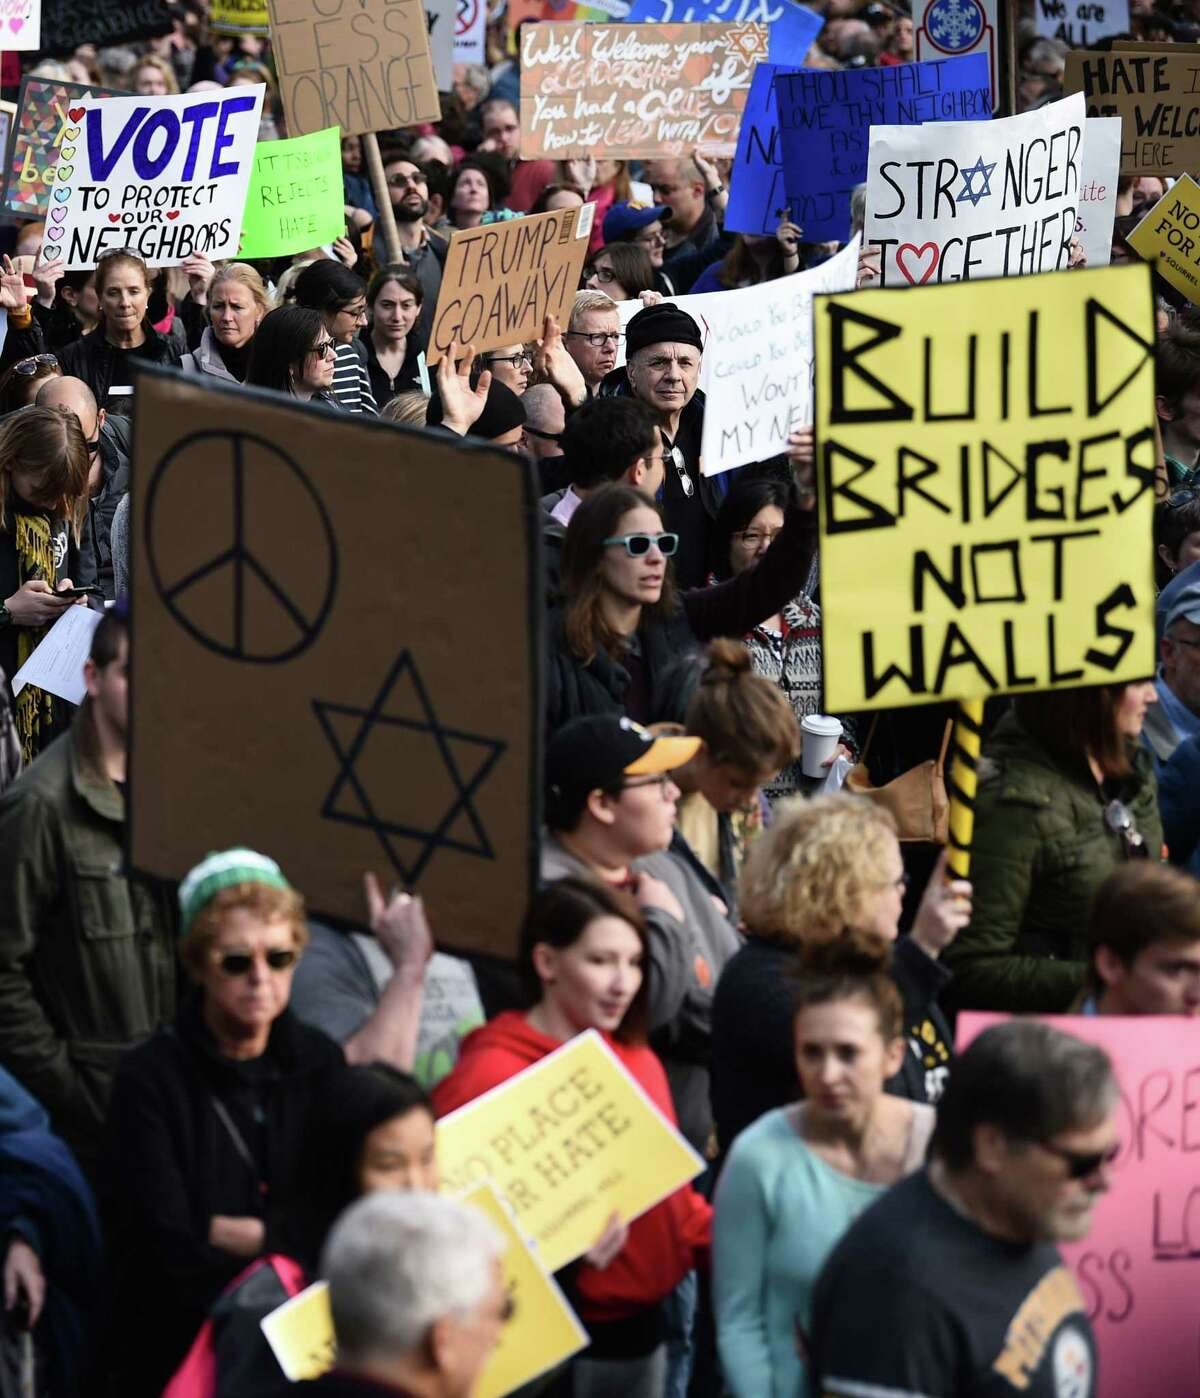 """Scores of protesters took to the streets of Pittsburgh to denounce a visit by President Donald Trump in the wake of a mass shooting at a synagogue that left 11 people dead. Demonstrators gathered near the Tree of Life synagogue, where the shooting took place, holding signs that read """"President Hate, Leave Our State!"""" and """"Trump, Renounce White Nationalism Now."""""""